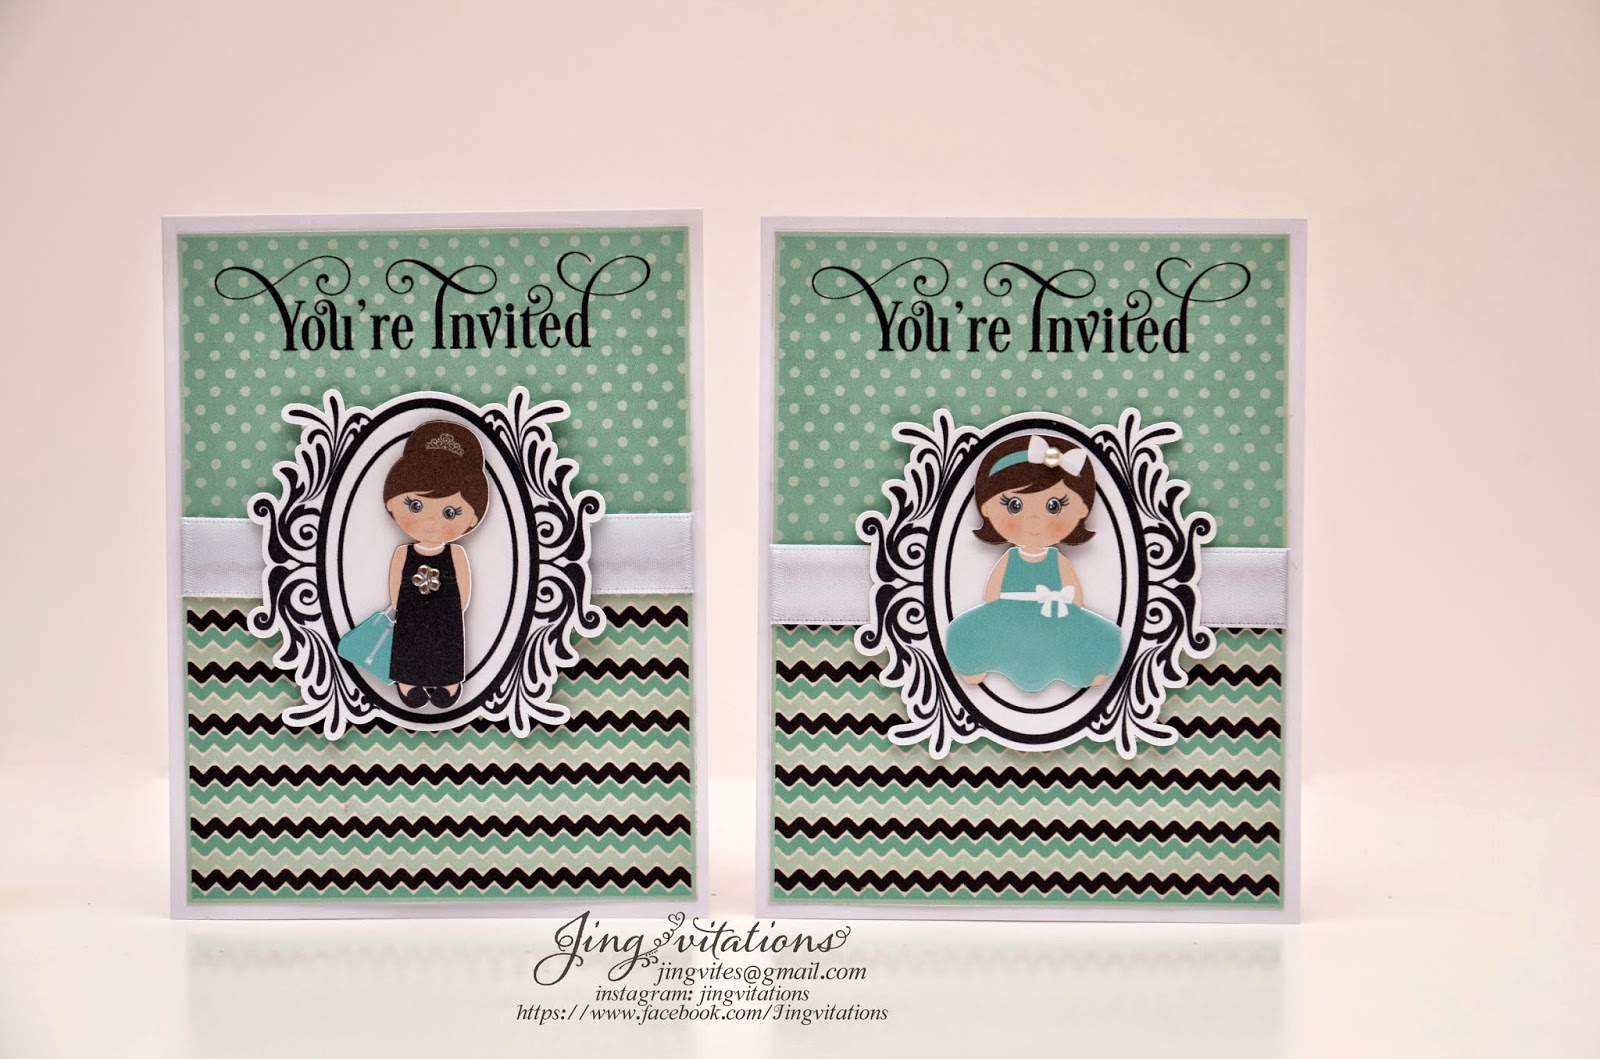 tiffany_invitations